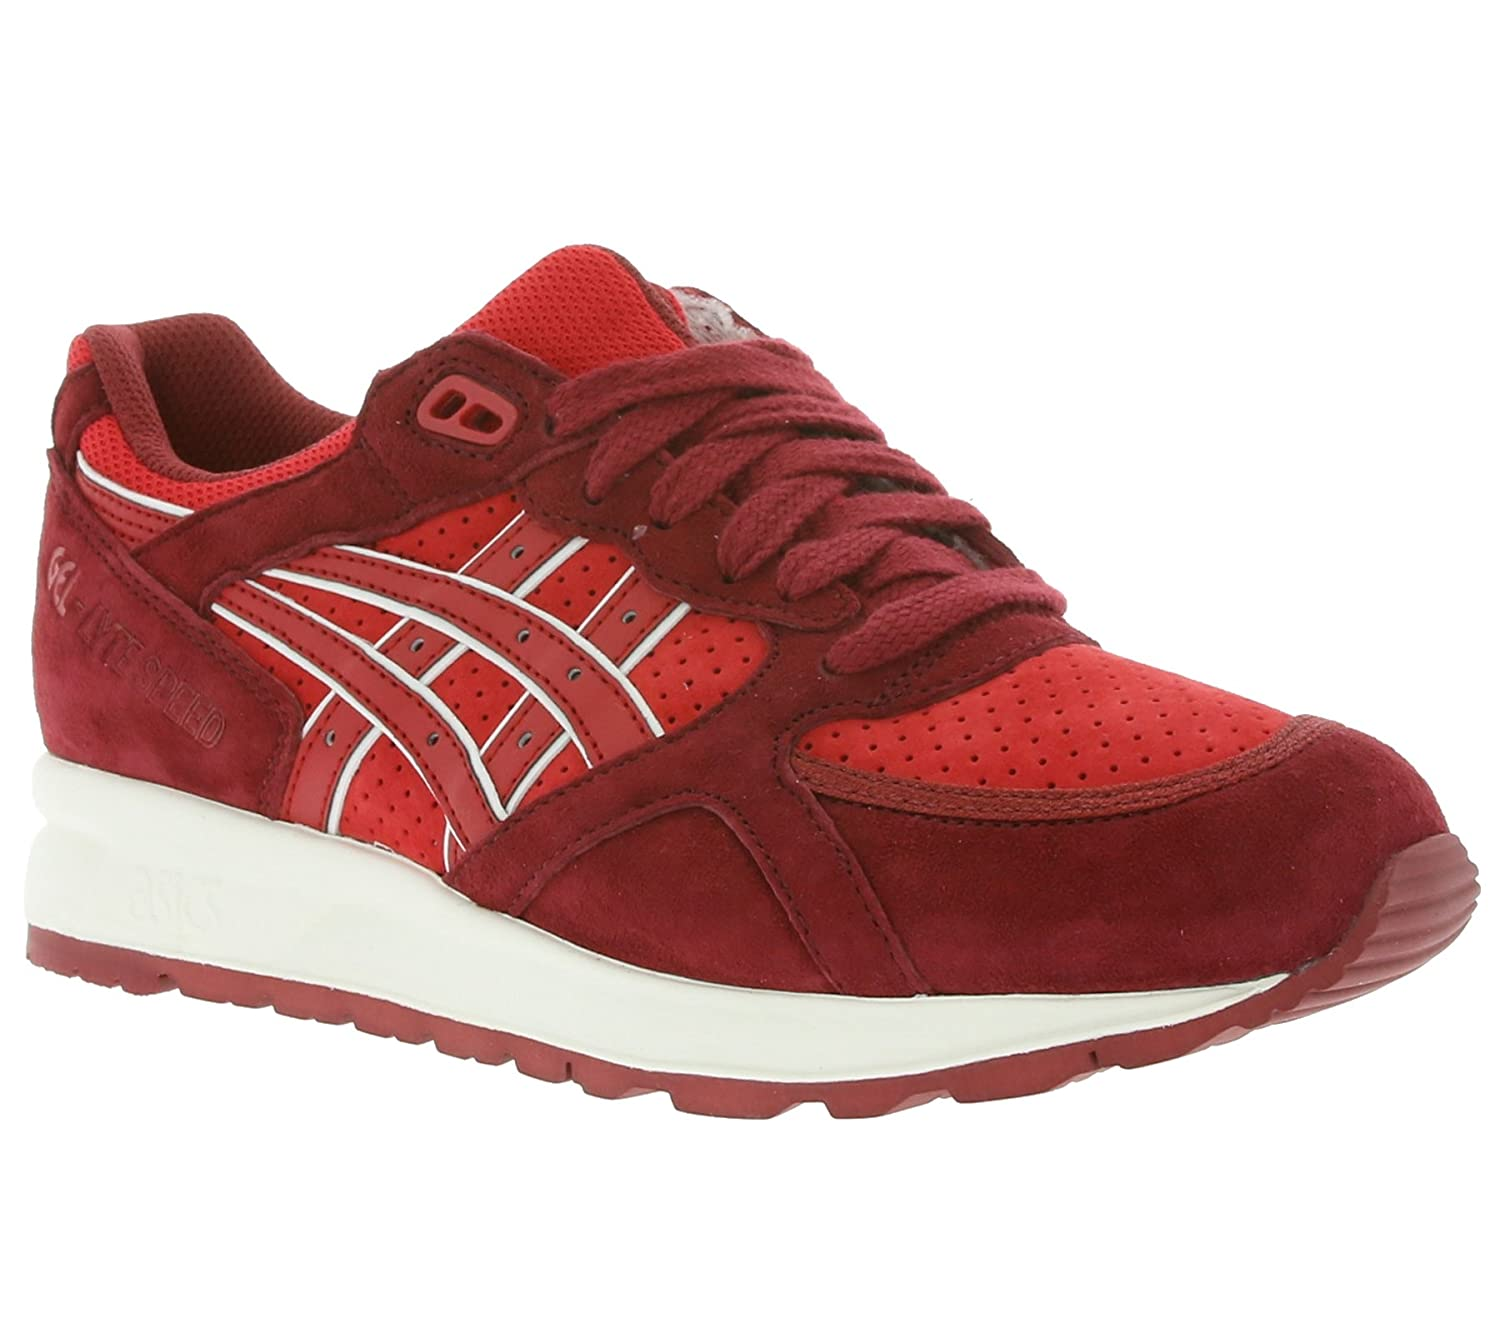 70d493a9eee Asics Shoes GEL-LYTE SPEED BURGUNDY   RED 15 16 Asics Tiger